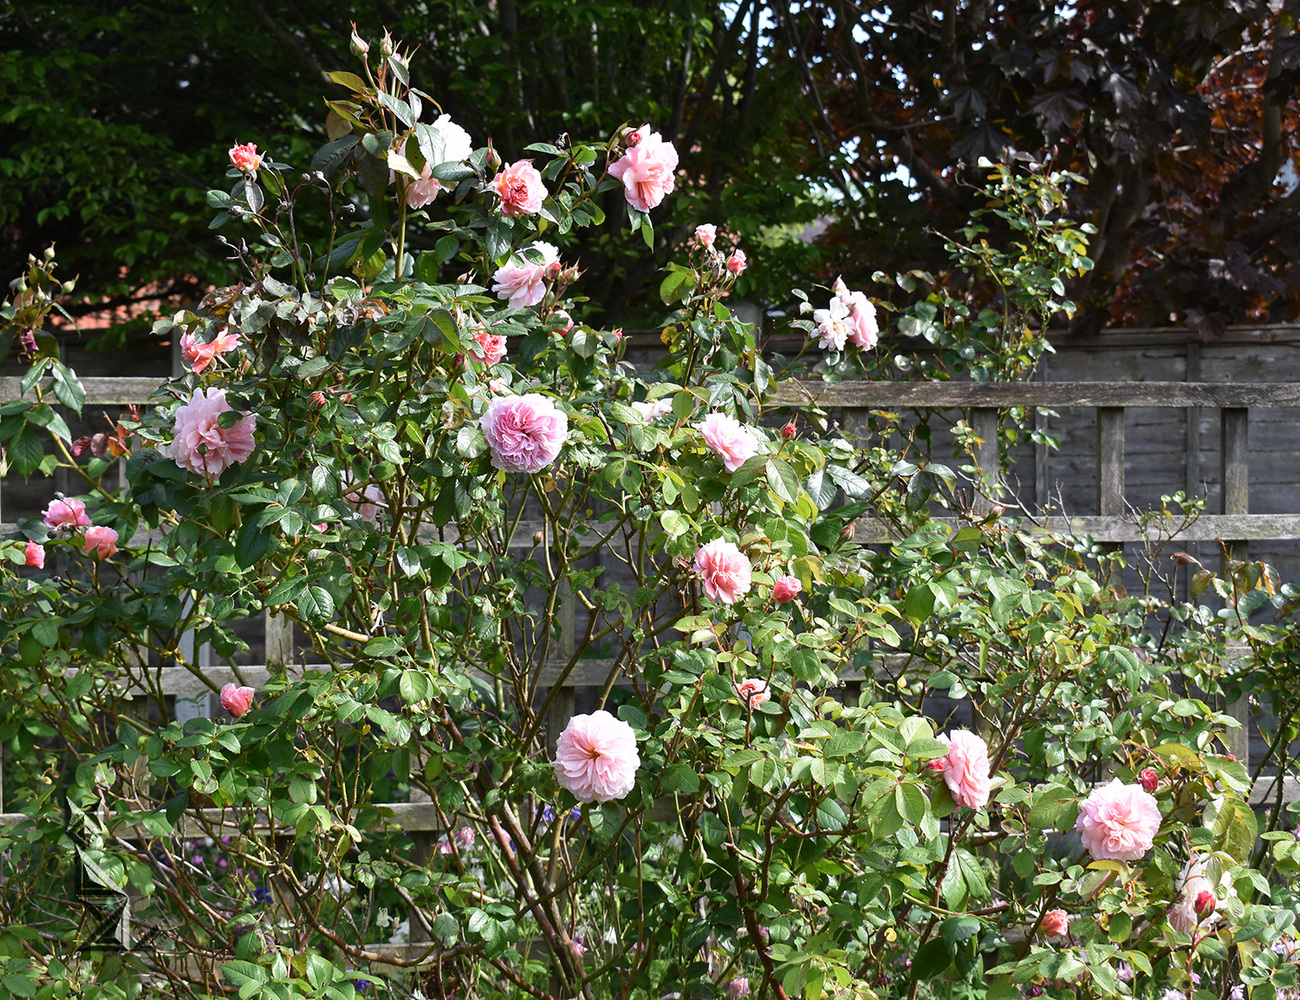 and (last one ) A Shropshire Lad (3) by A_Sunbeam